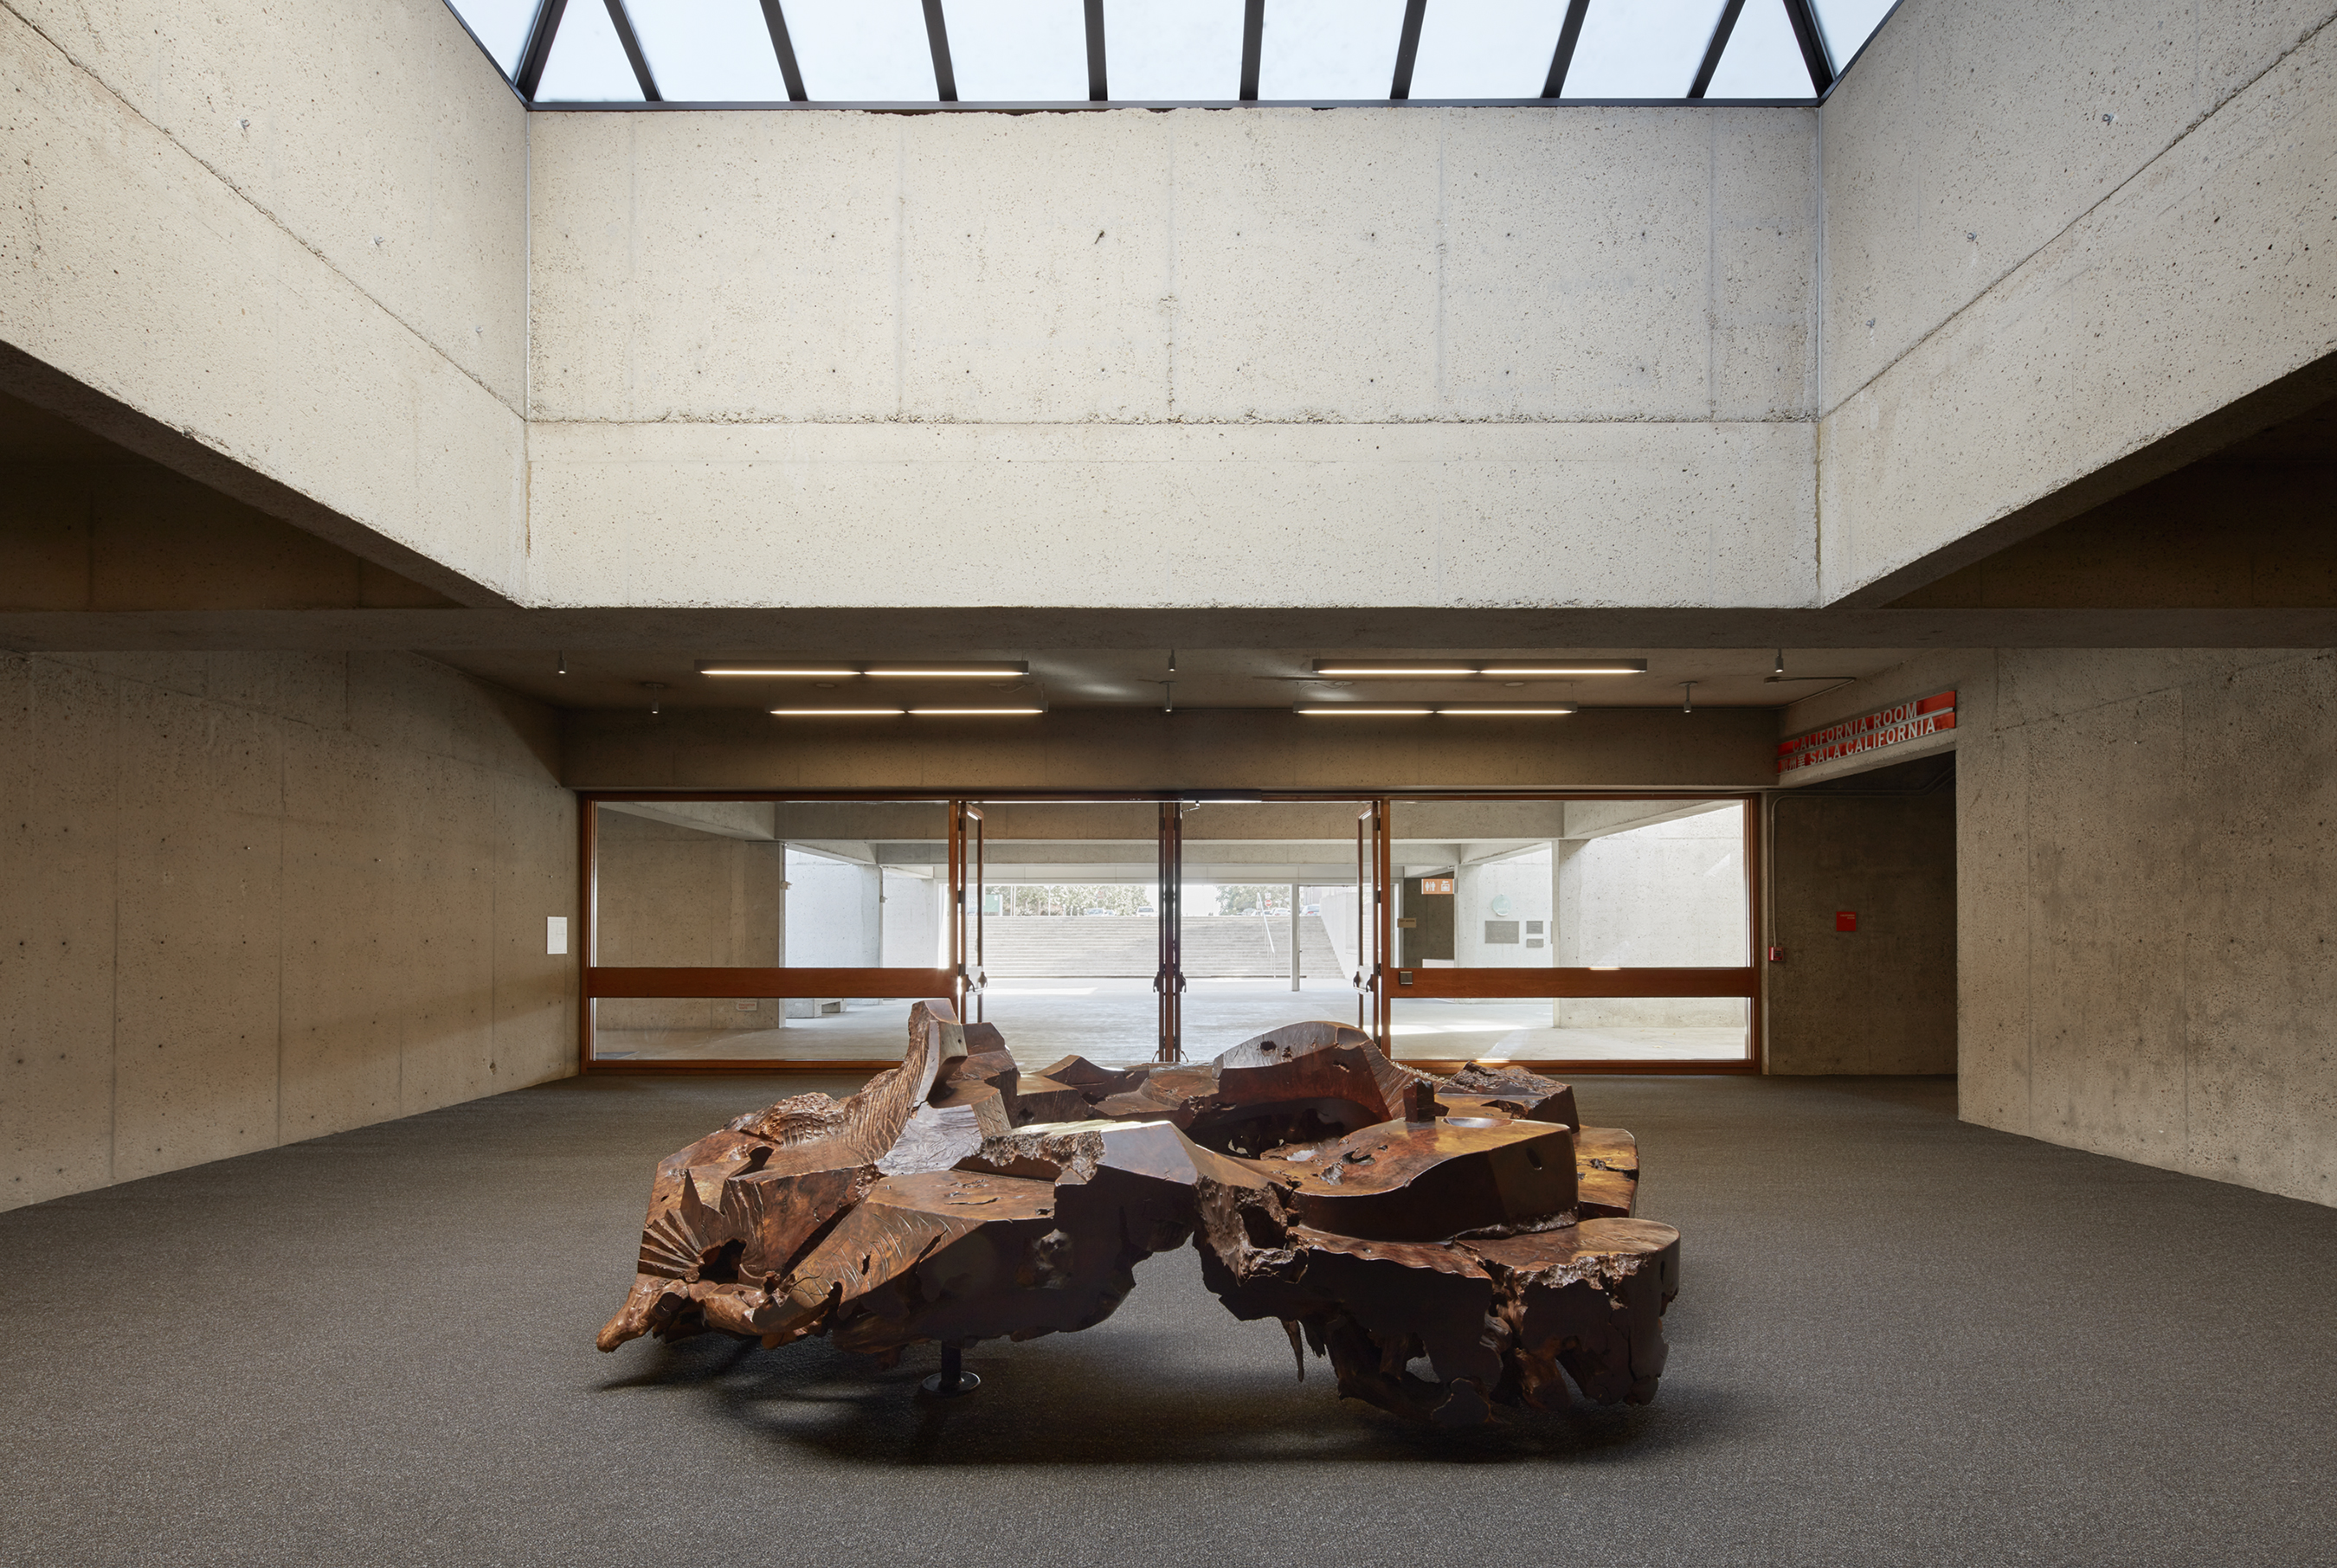 A large redwood burl sculpture in the center of OMCA's Natural Sciences lobby